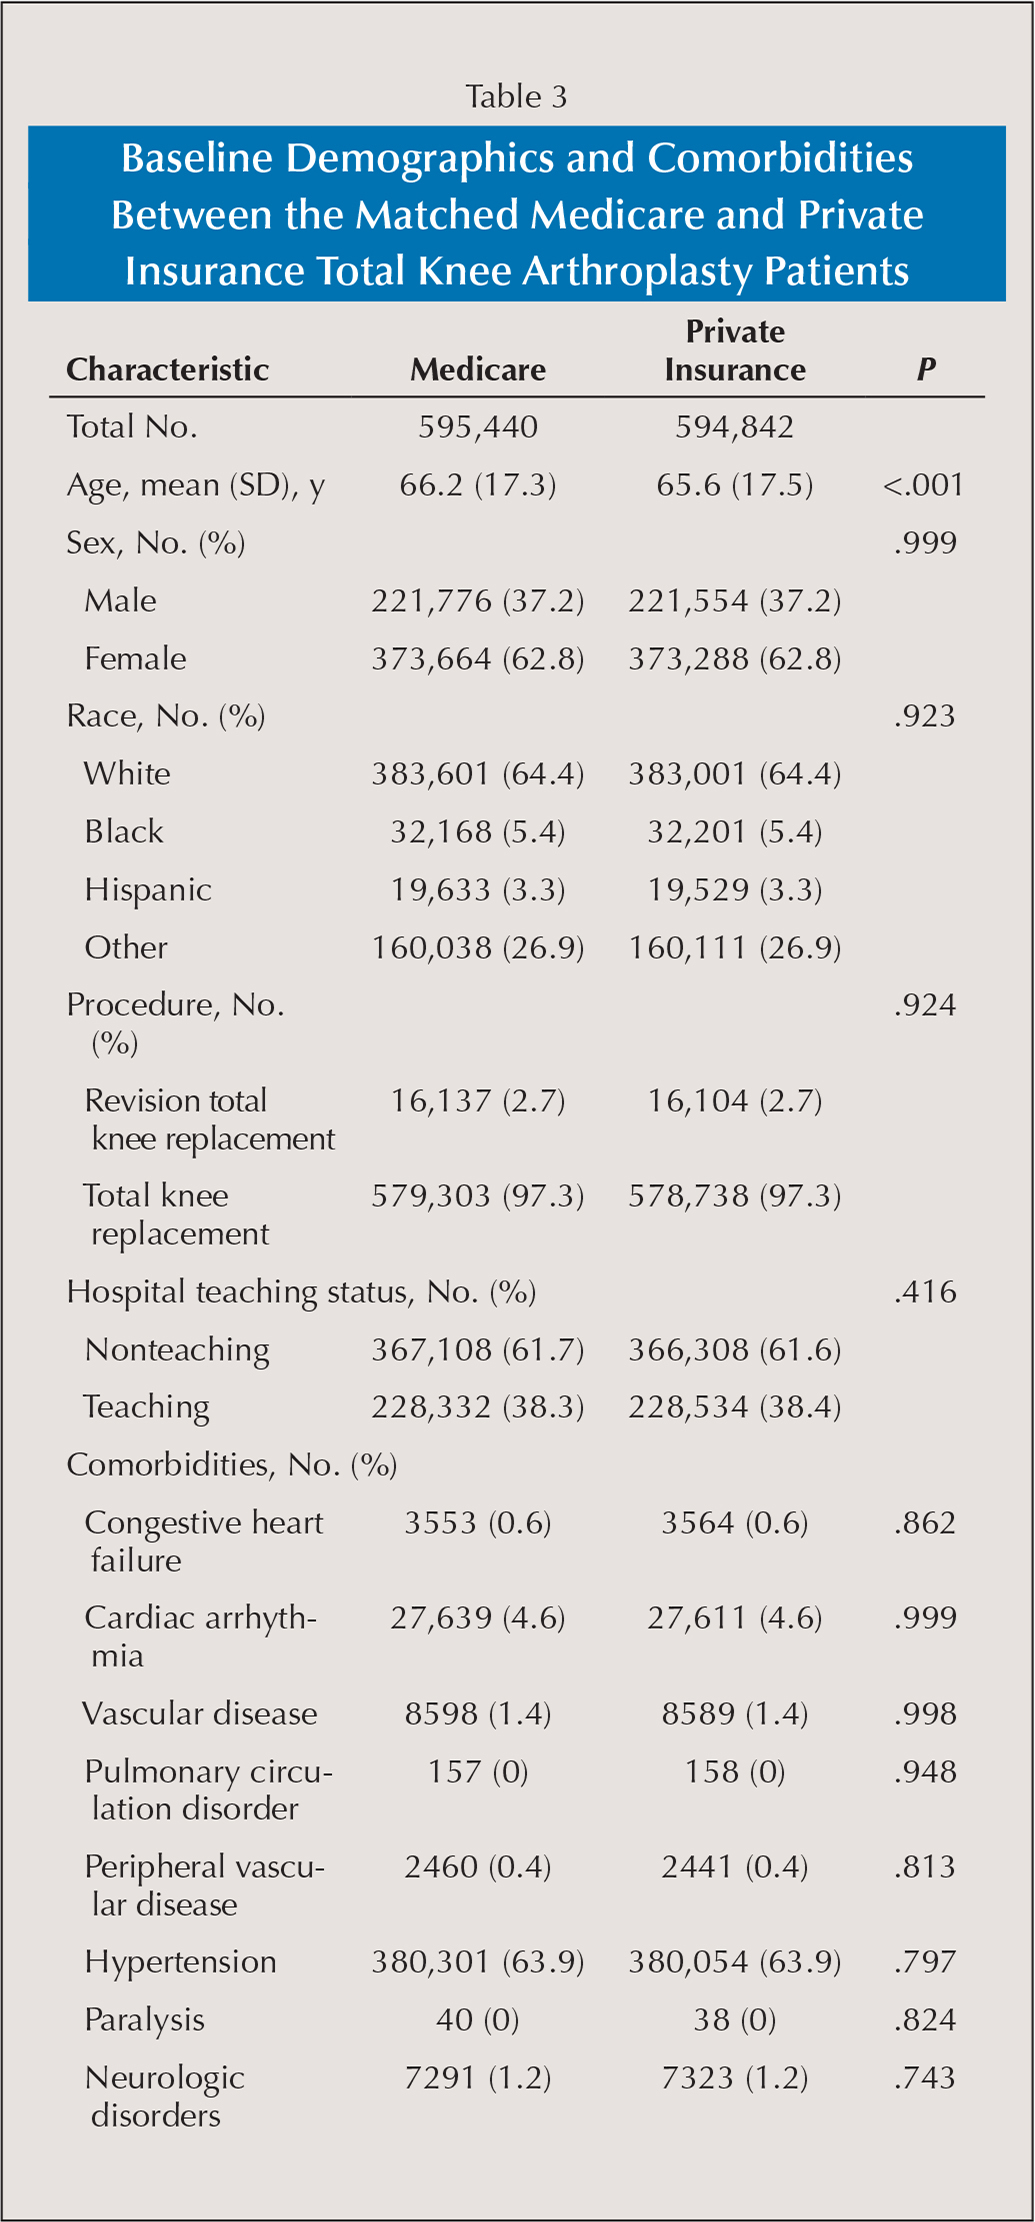 Baseline Demographics and Comorbidities Between the Matched Medicare and Private Insurance Total Knee Arthroplasty Patients